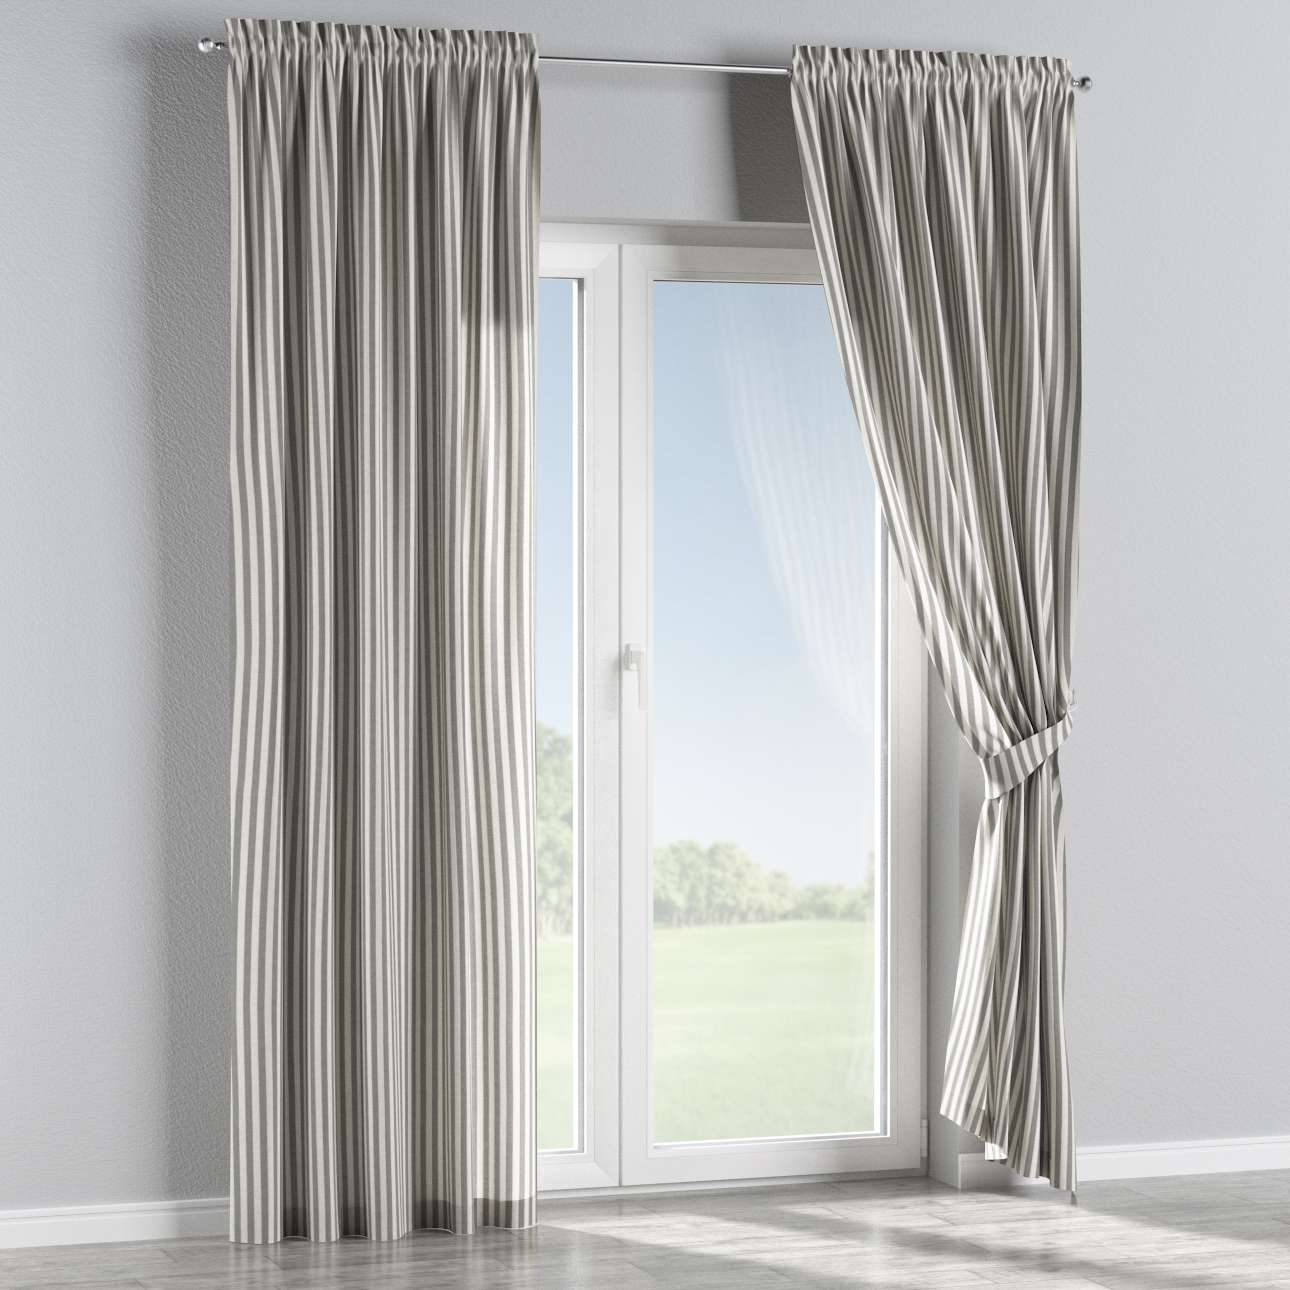 Slot and frill curtains 130 × 260 cm (51 × 102 inch) in collection Quadro, fabric: 136-12